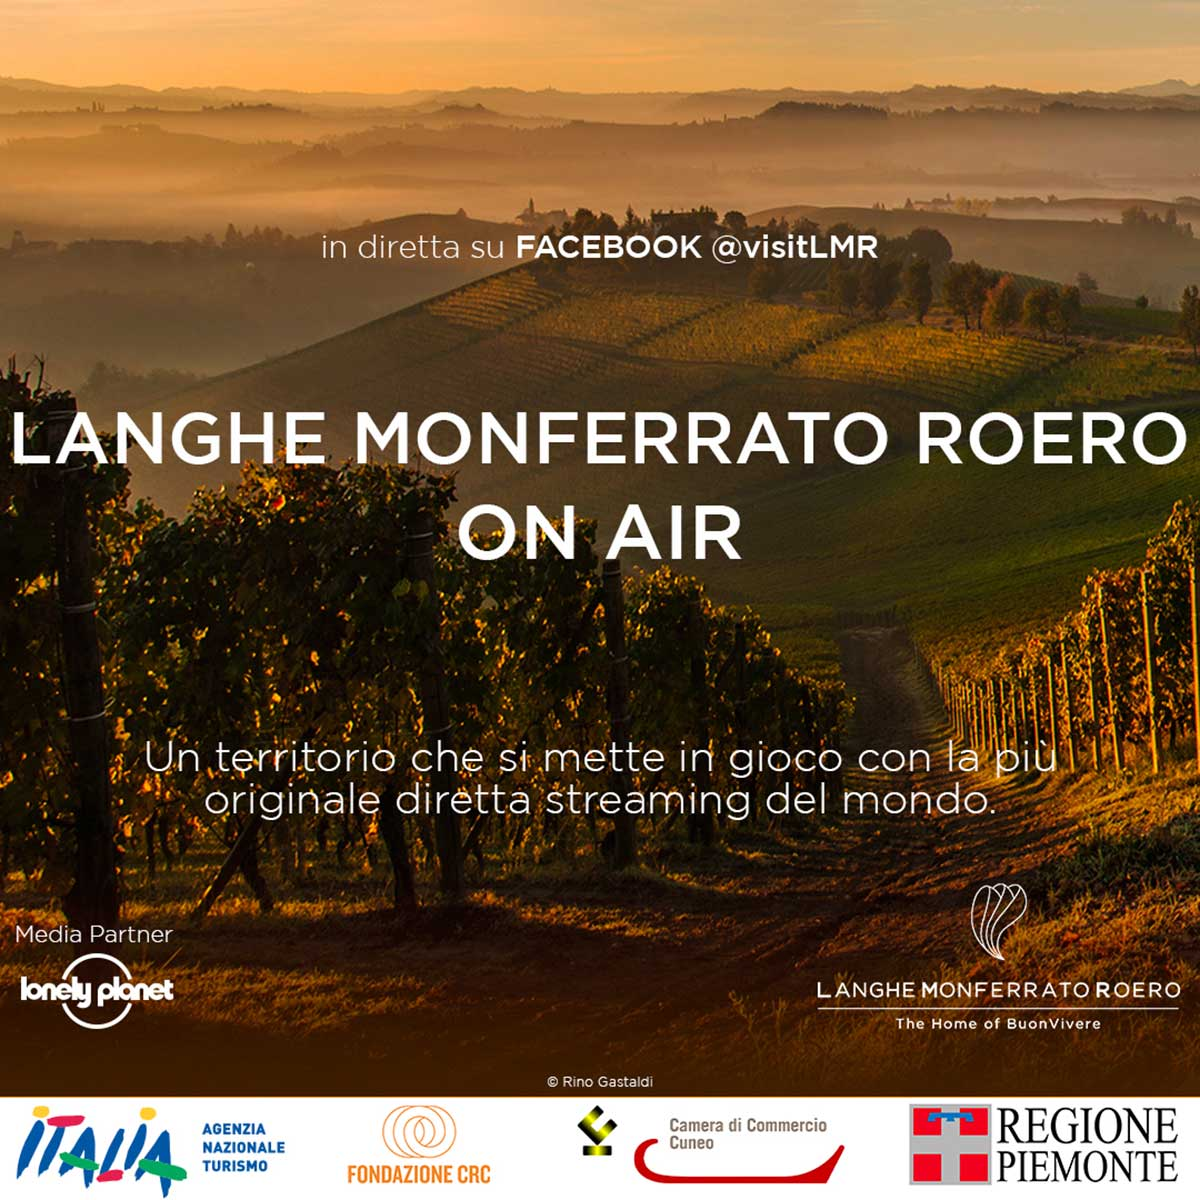 langhe-monferrato-roero-on-air